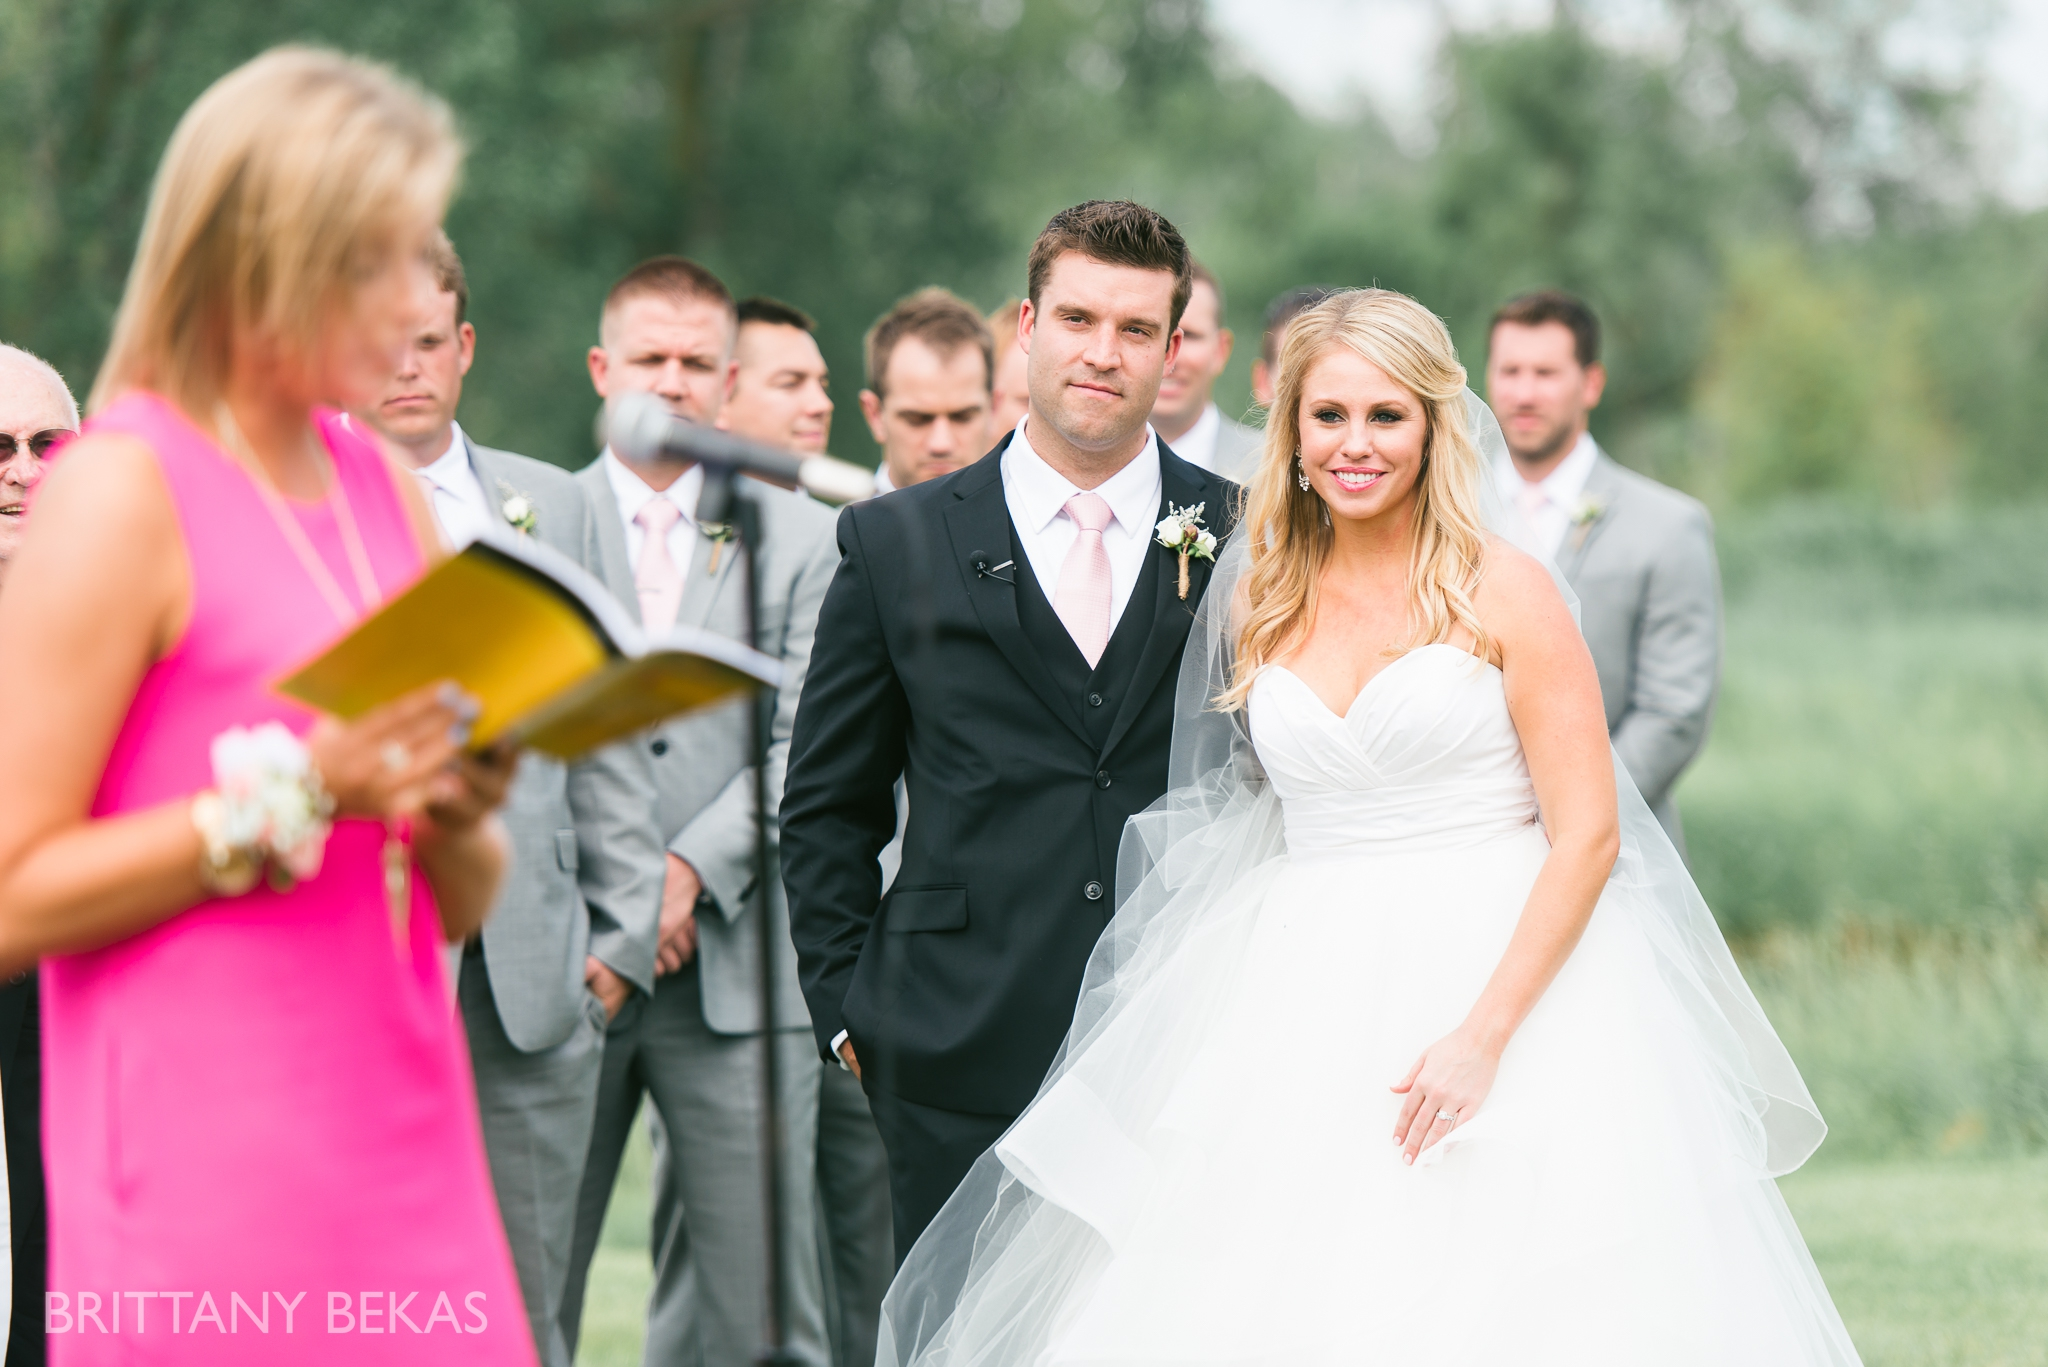 New Buffalo Wedding - Willow Harbor Vineyards Wedding Photos - Brittany Bekas Photography_0039